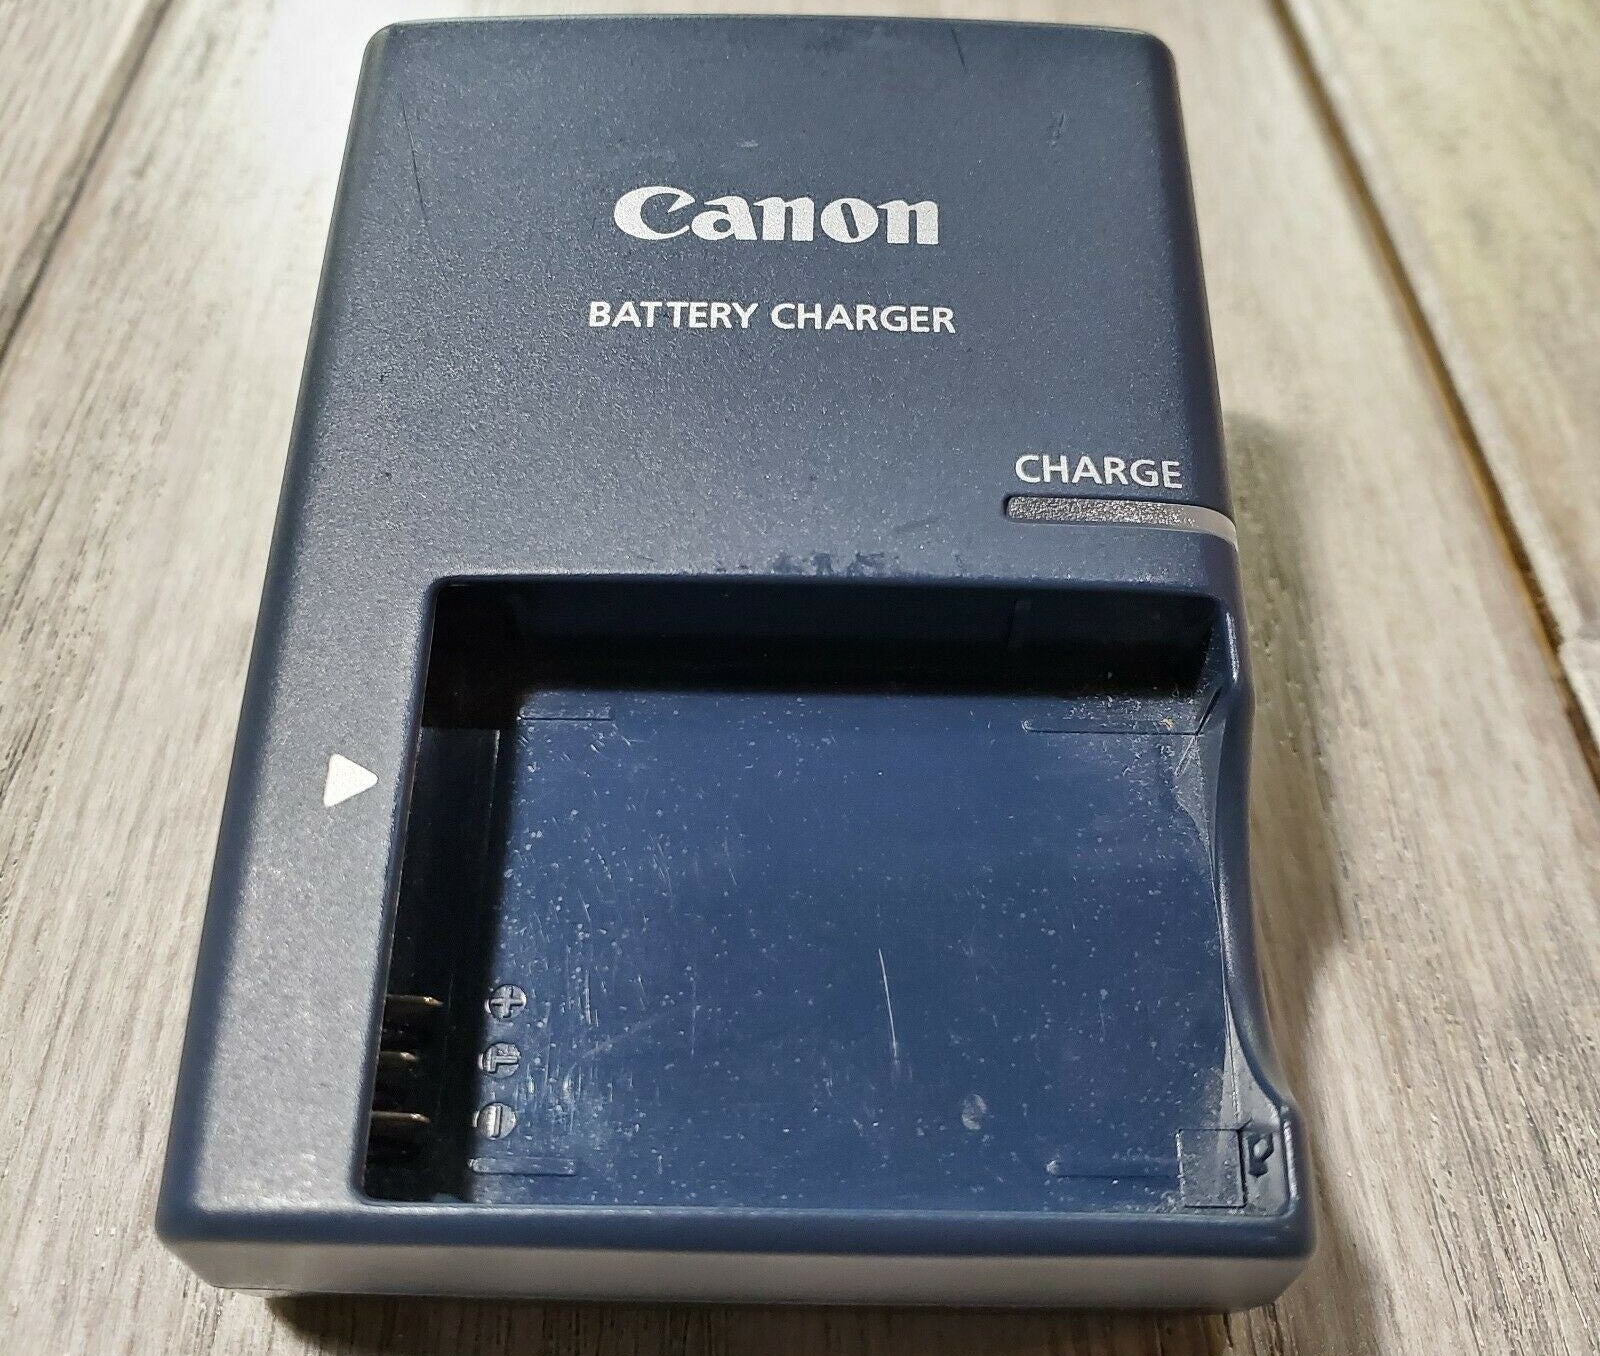 A photo of a Canon batter charger